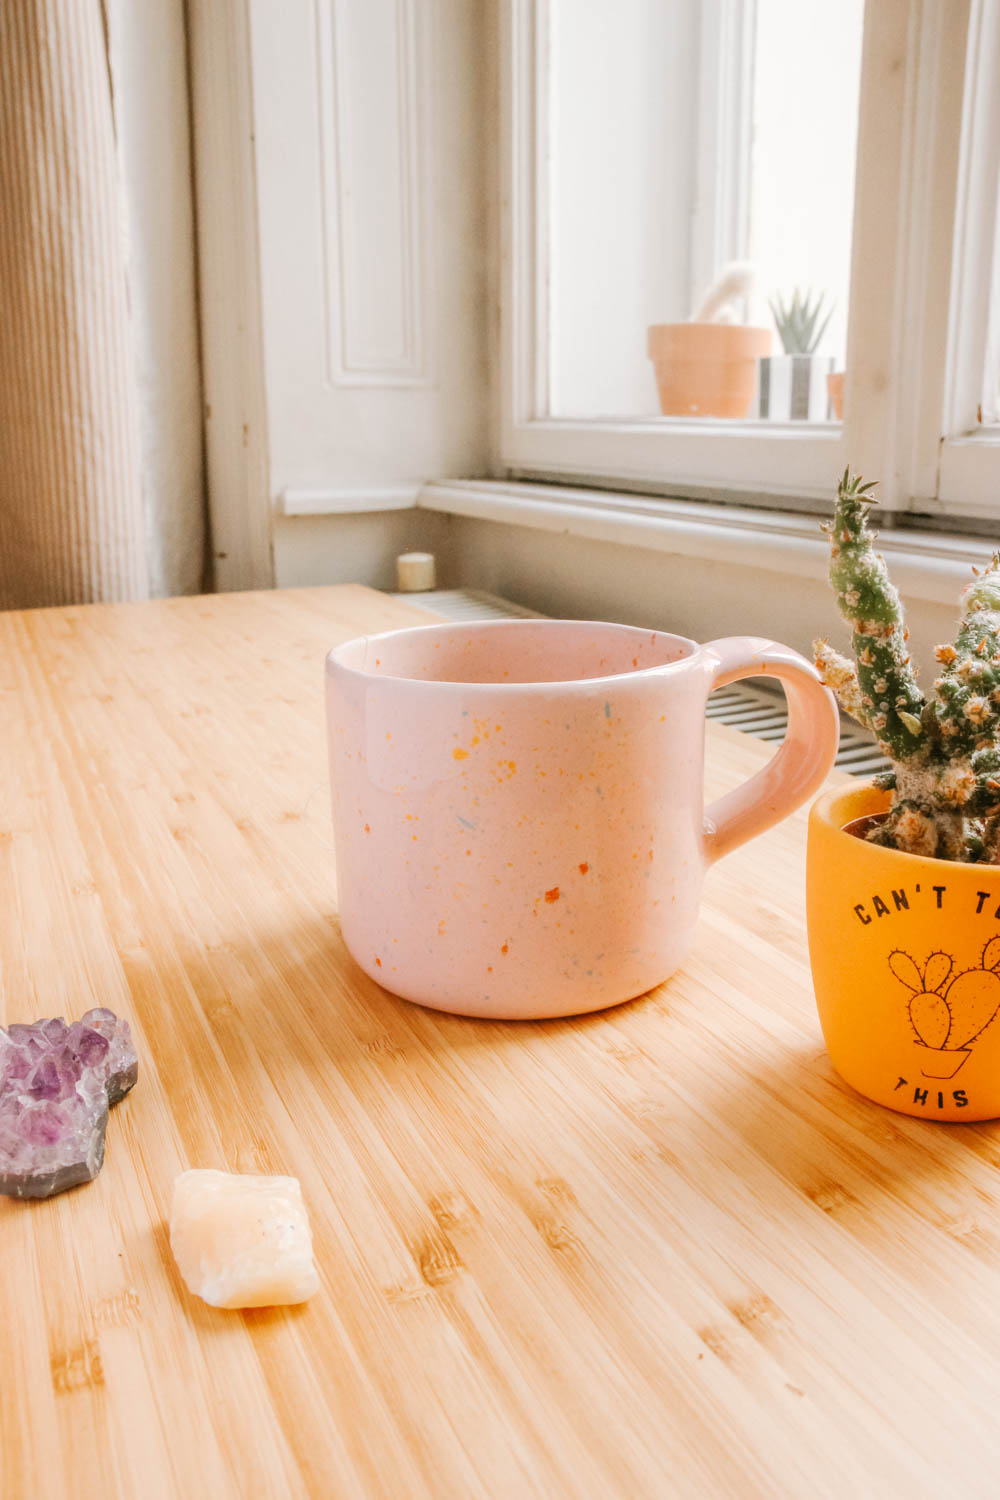 A cup of tea next to a cactus and some crystals